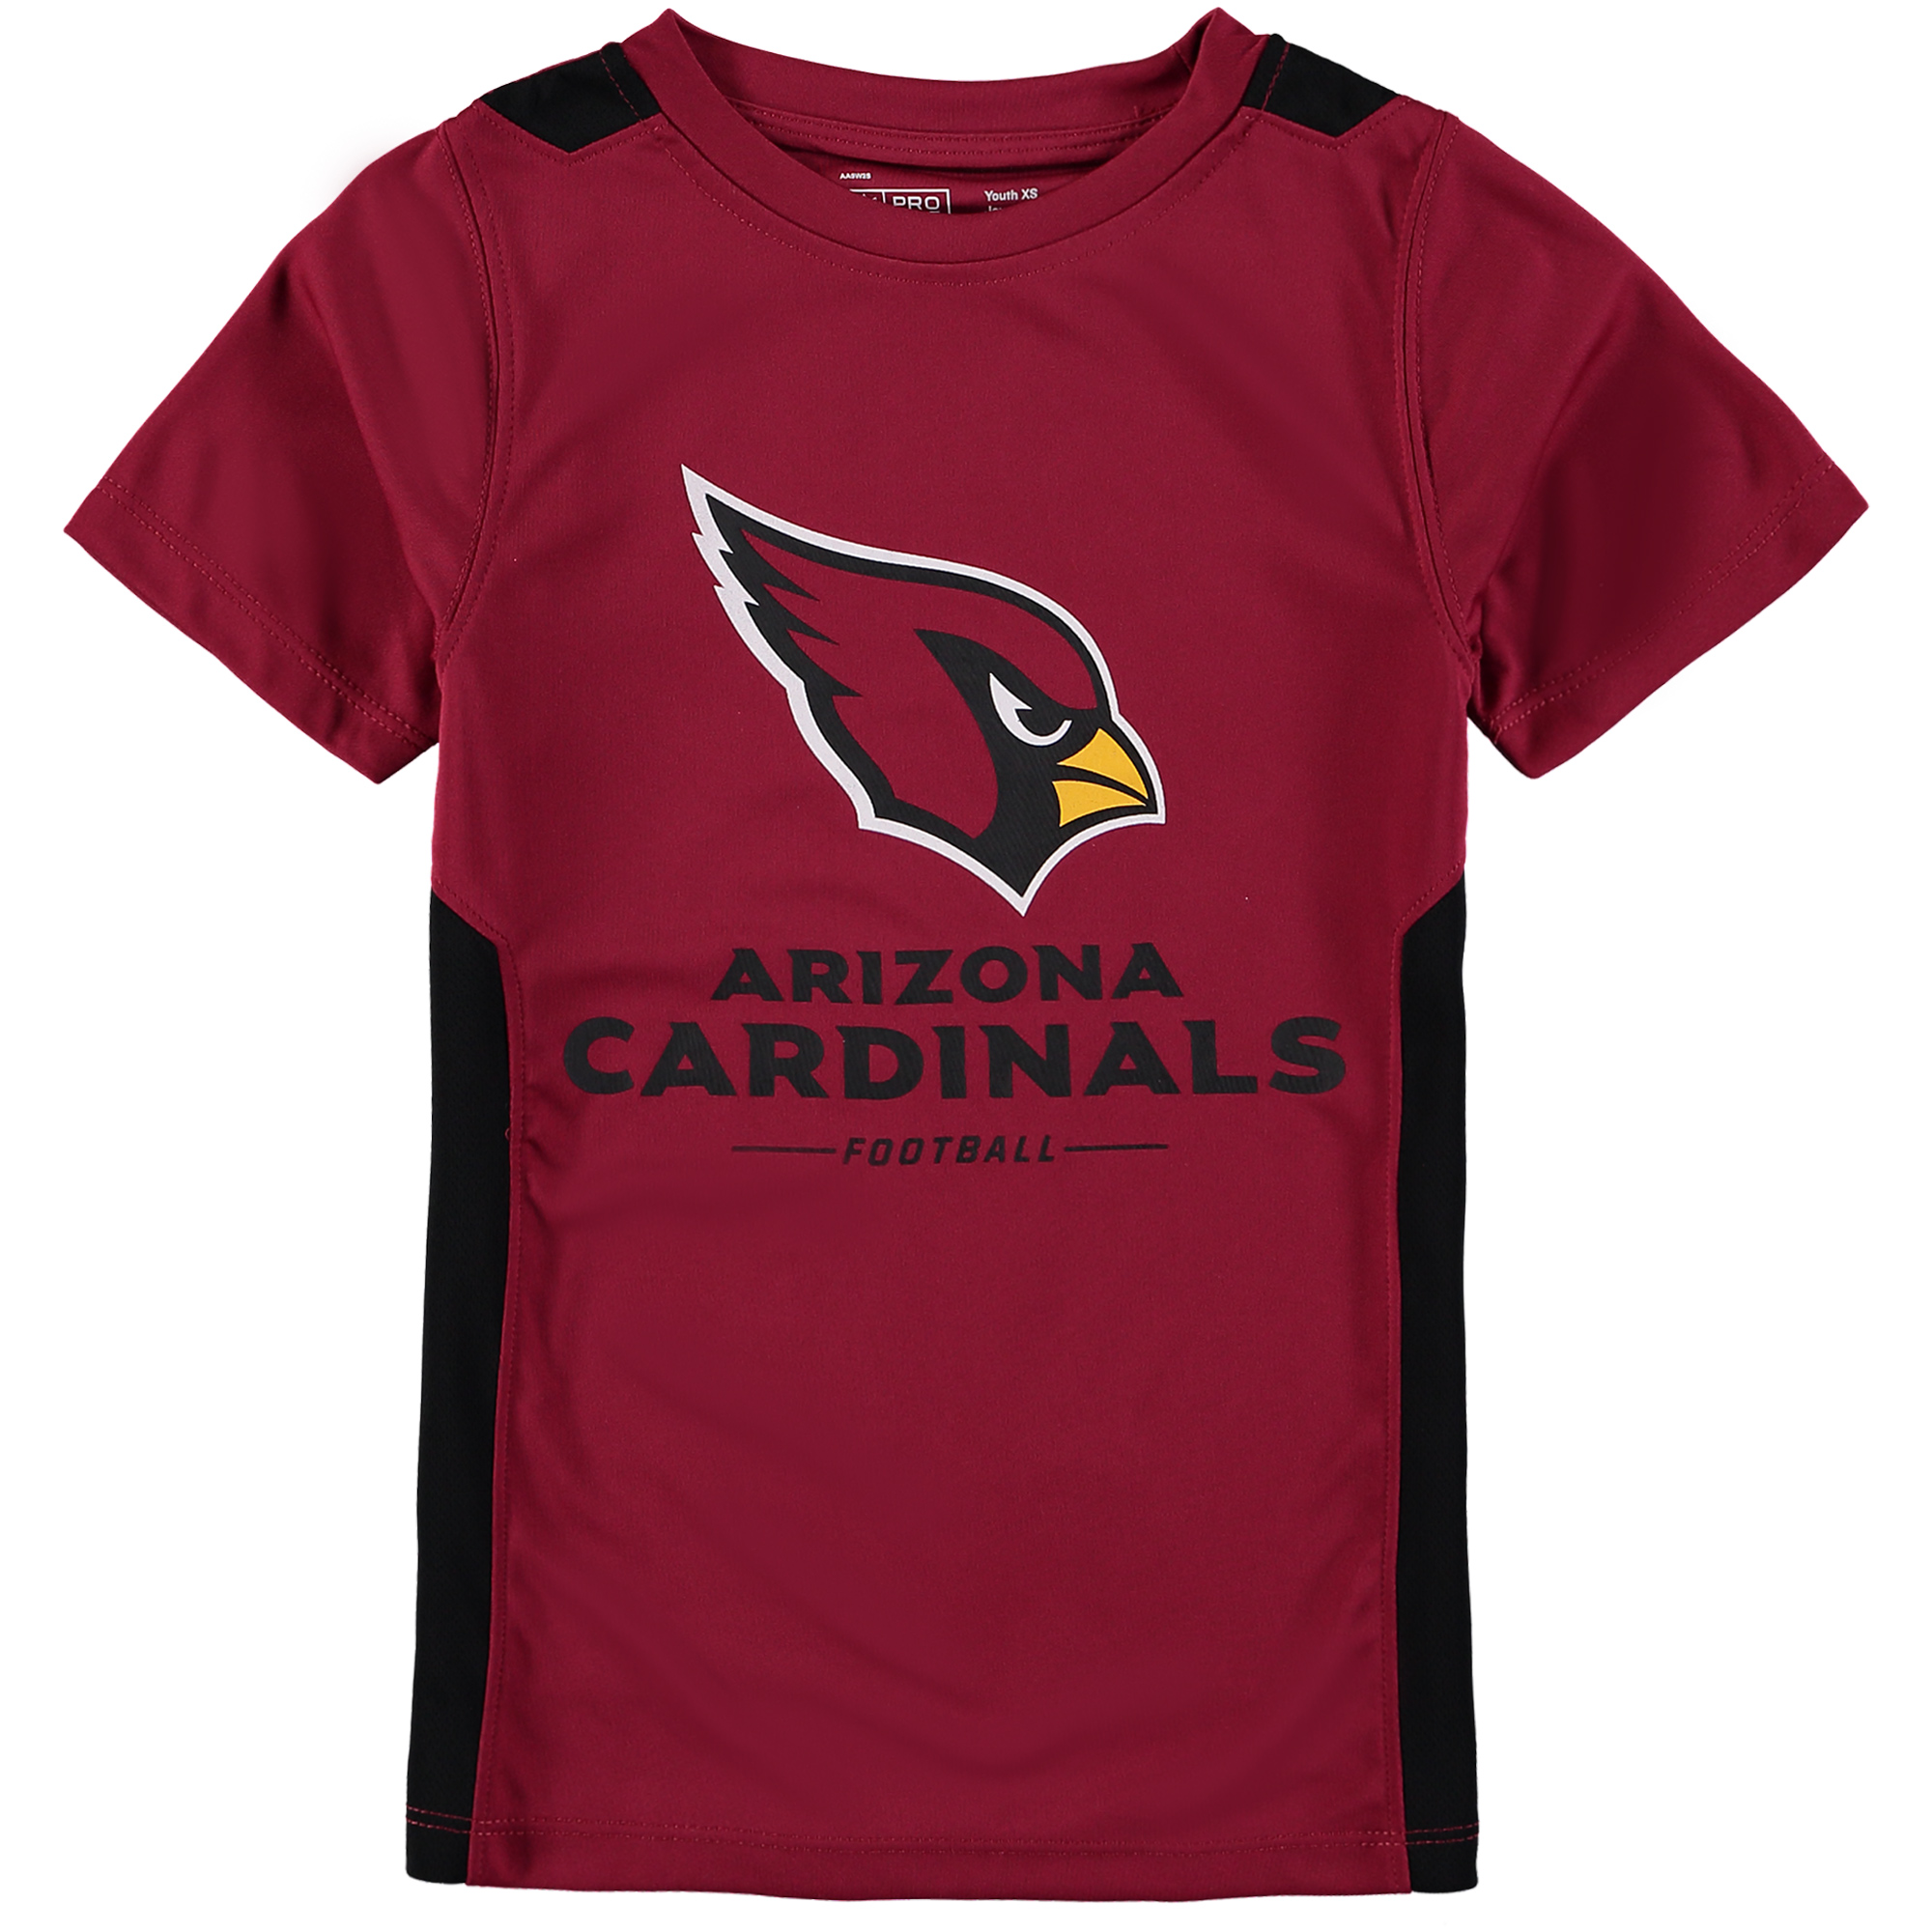 Arizona Cardinals NFL Pro Line by Fanatics Branded Youth Team Lockup Colorblock T-Shirt - Cardinal/Black